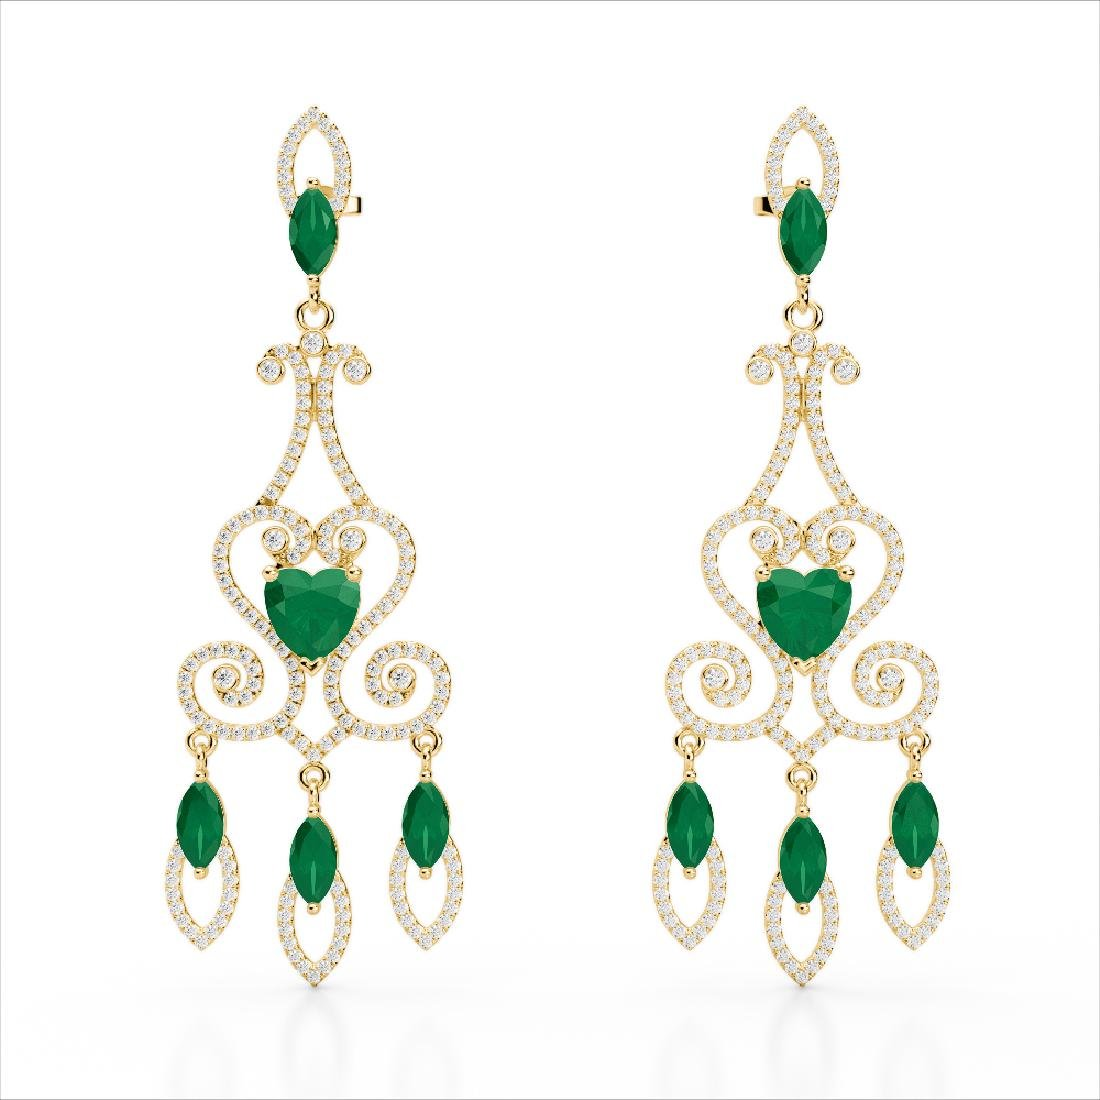 11 CTW Emerald & Micro Pave VS/SI Diamond Earrings 14K - 2